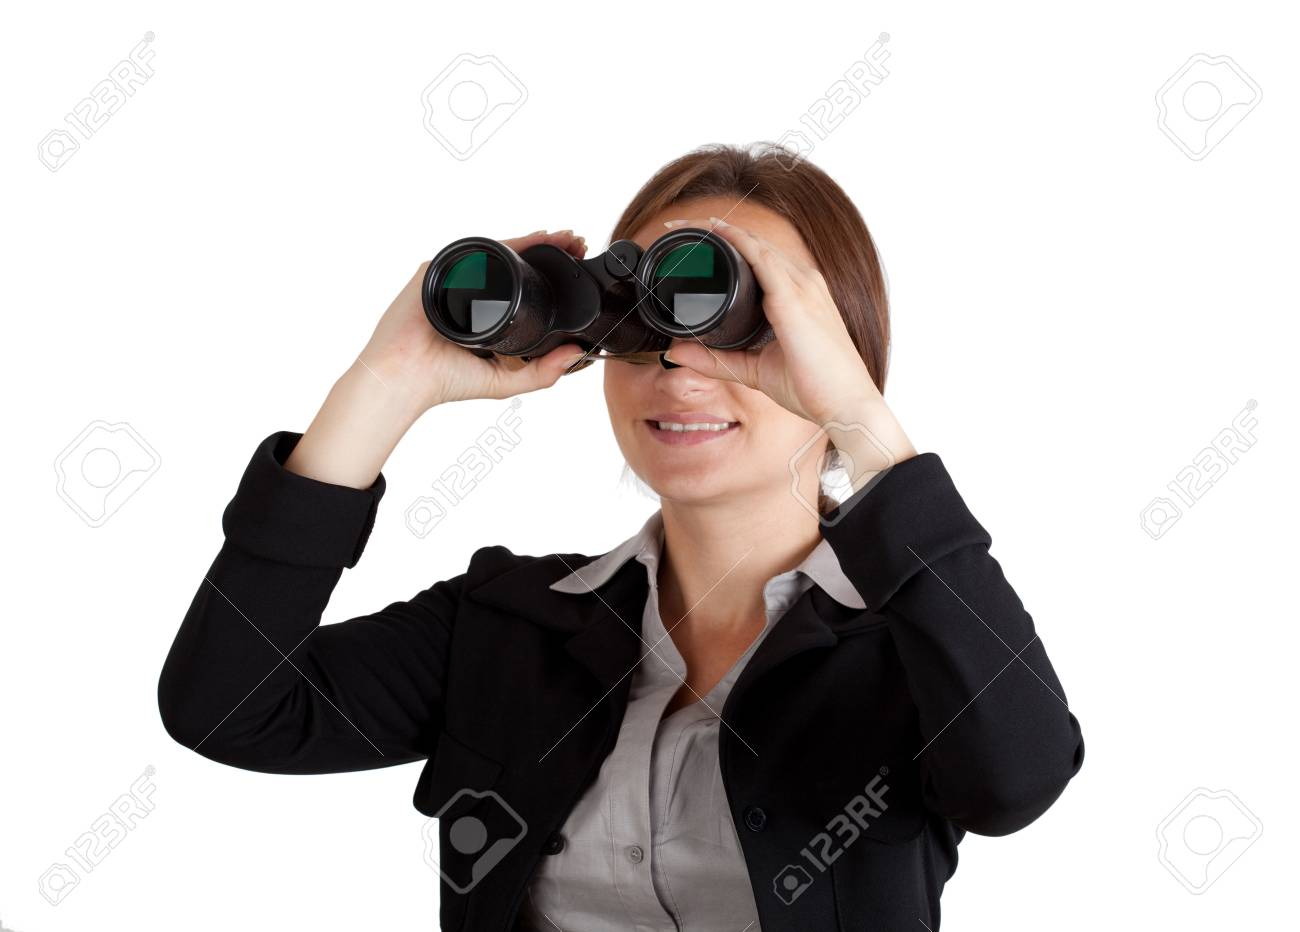 Business woman looking through binoculars  Isolated on white background Stock Photo - 13378329